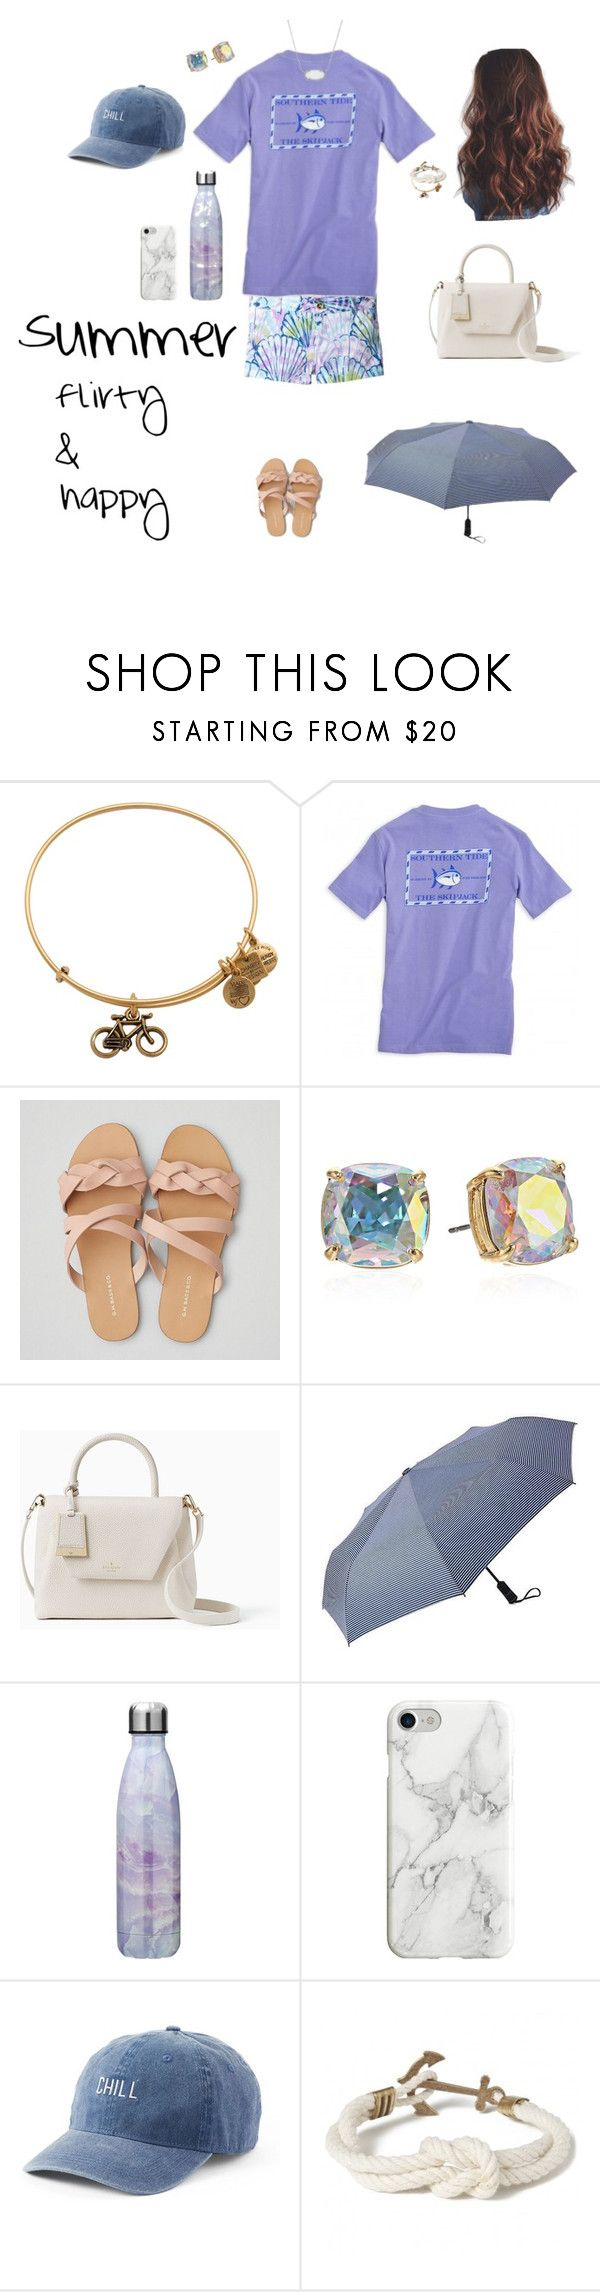 """""""Camp Starfall live-ins - Summer Cruz"""" by thekaileea ❤ liked on Polyvore featuring Alex and Ani, Lilly Pulitzer, American Eagle Outfitters, Kate Spade, Gap, Recover, SO, Kiel James Patrick and Kendra Scott"""